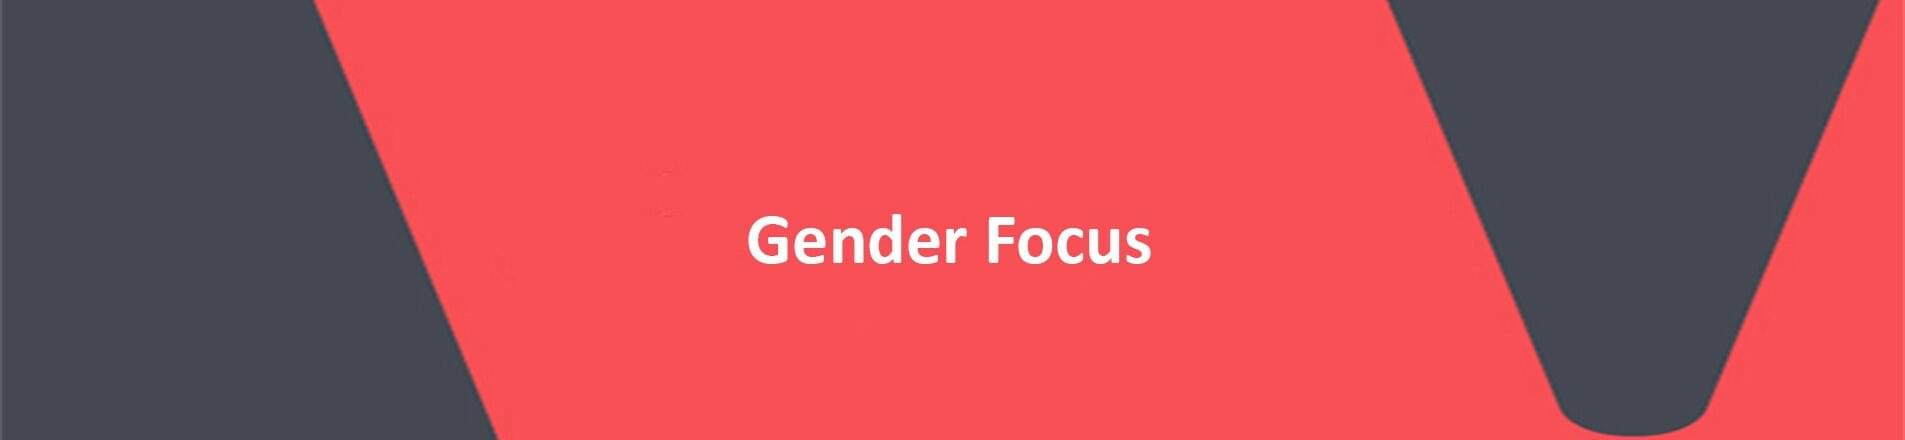 Red background with white text over the top spelling Gender Focus.